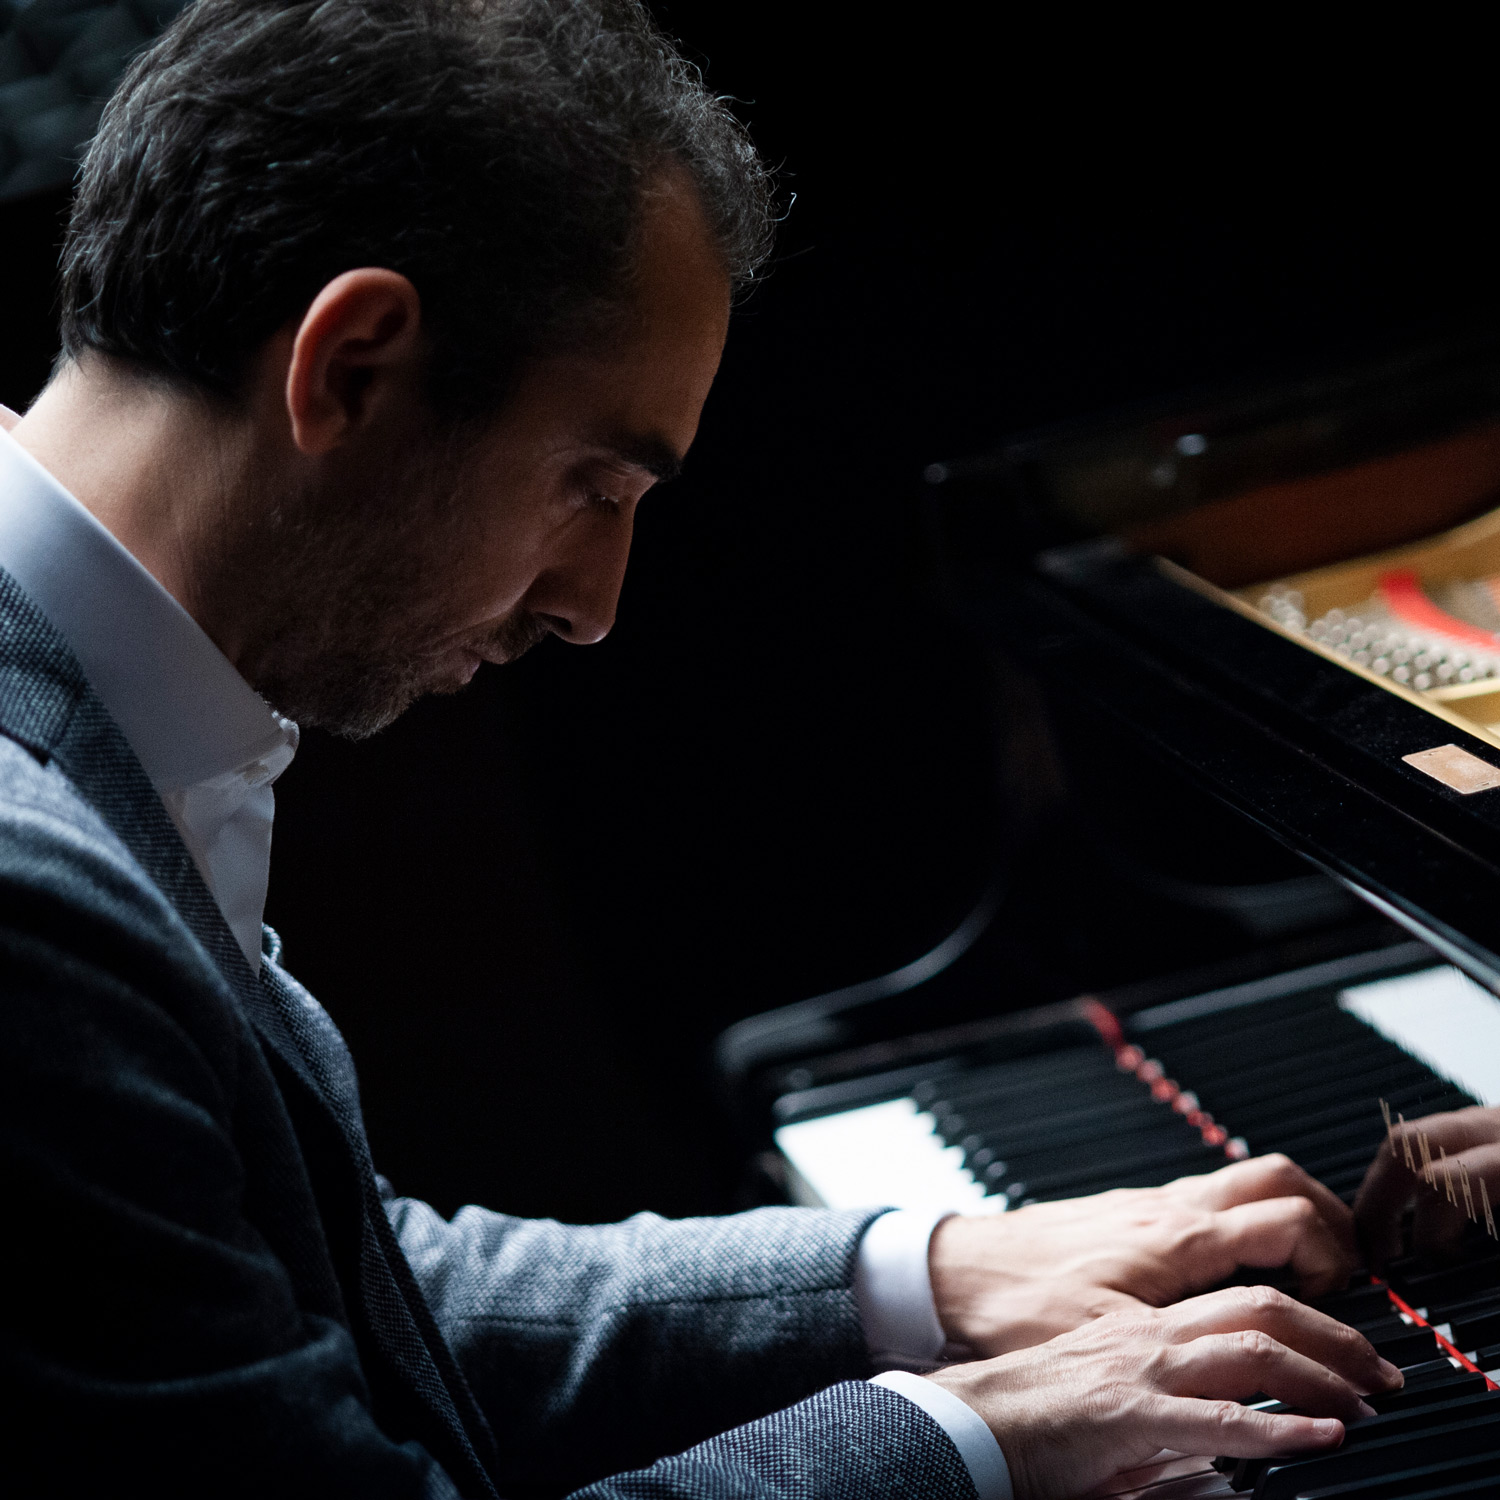 Biography of pianist composer Fabio di Biase